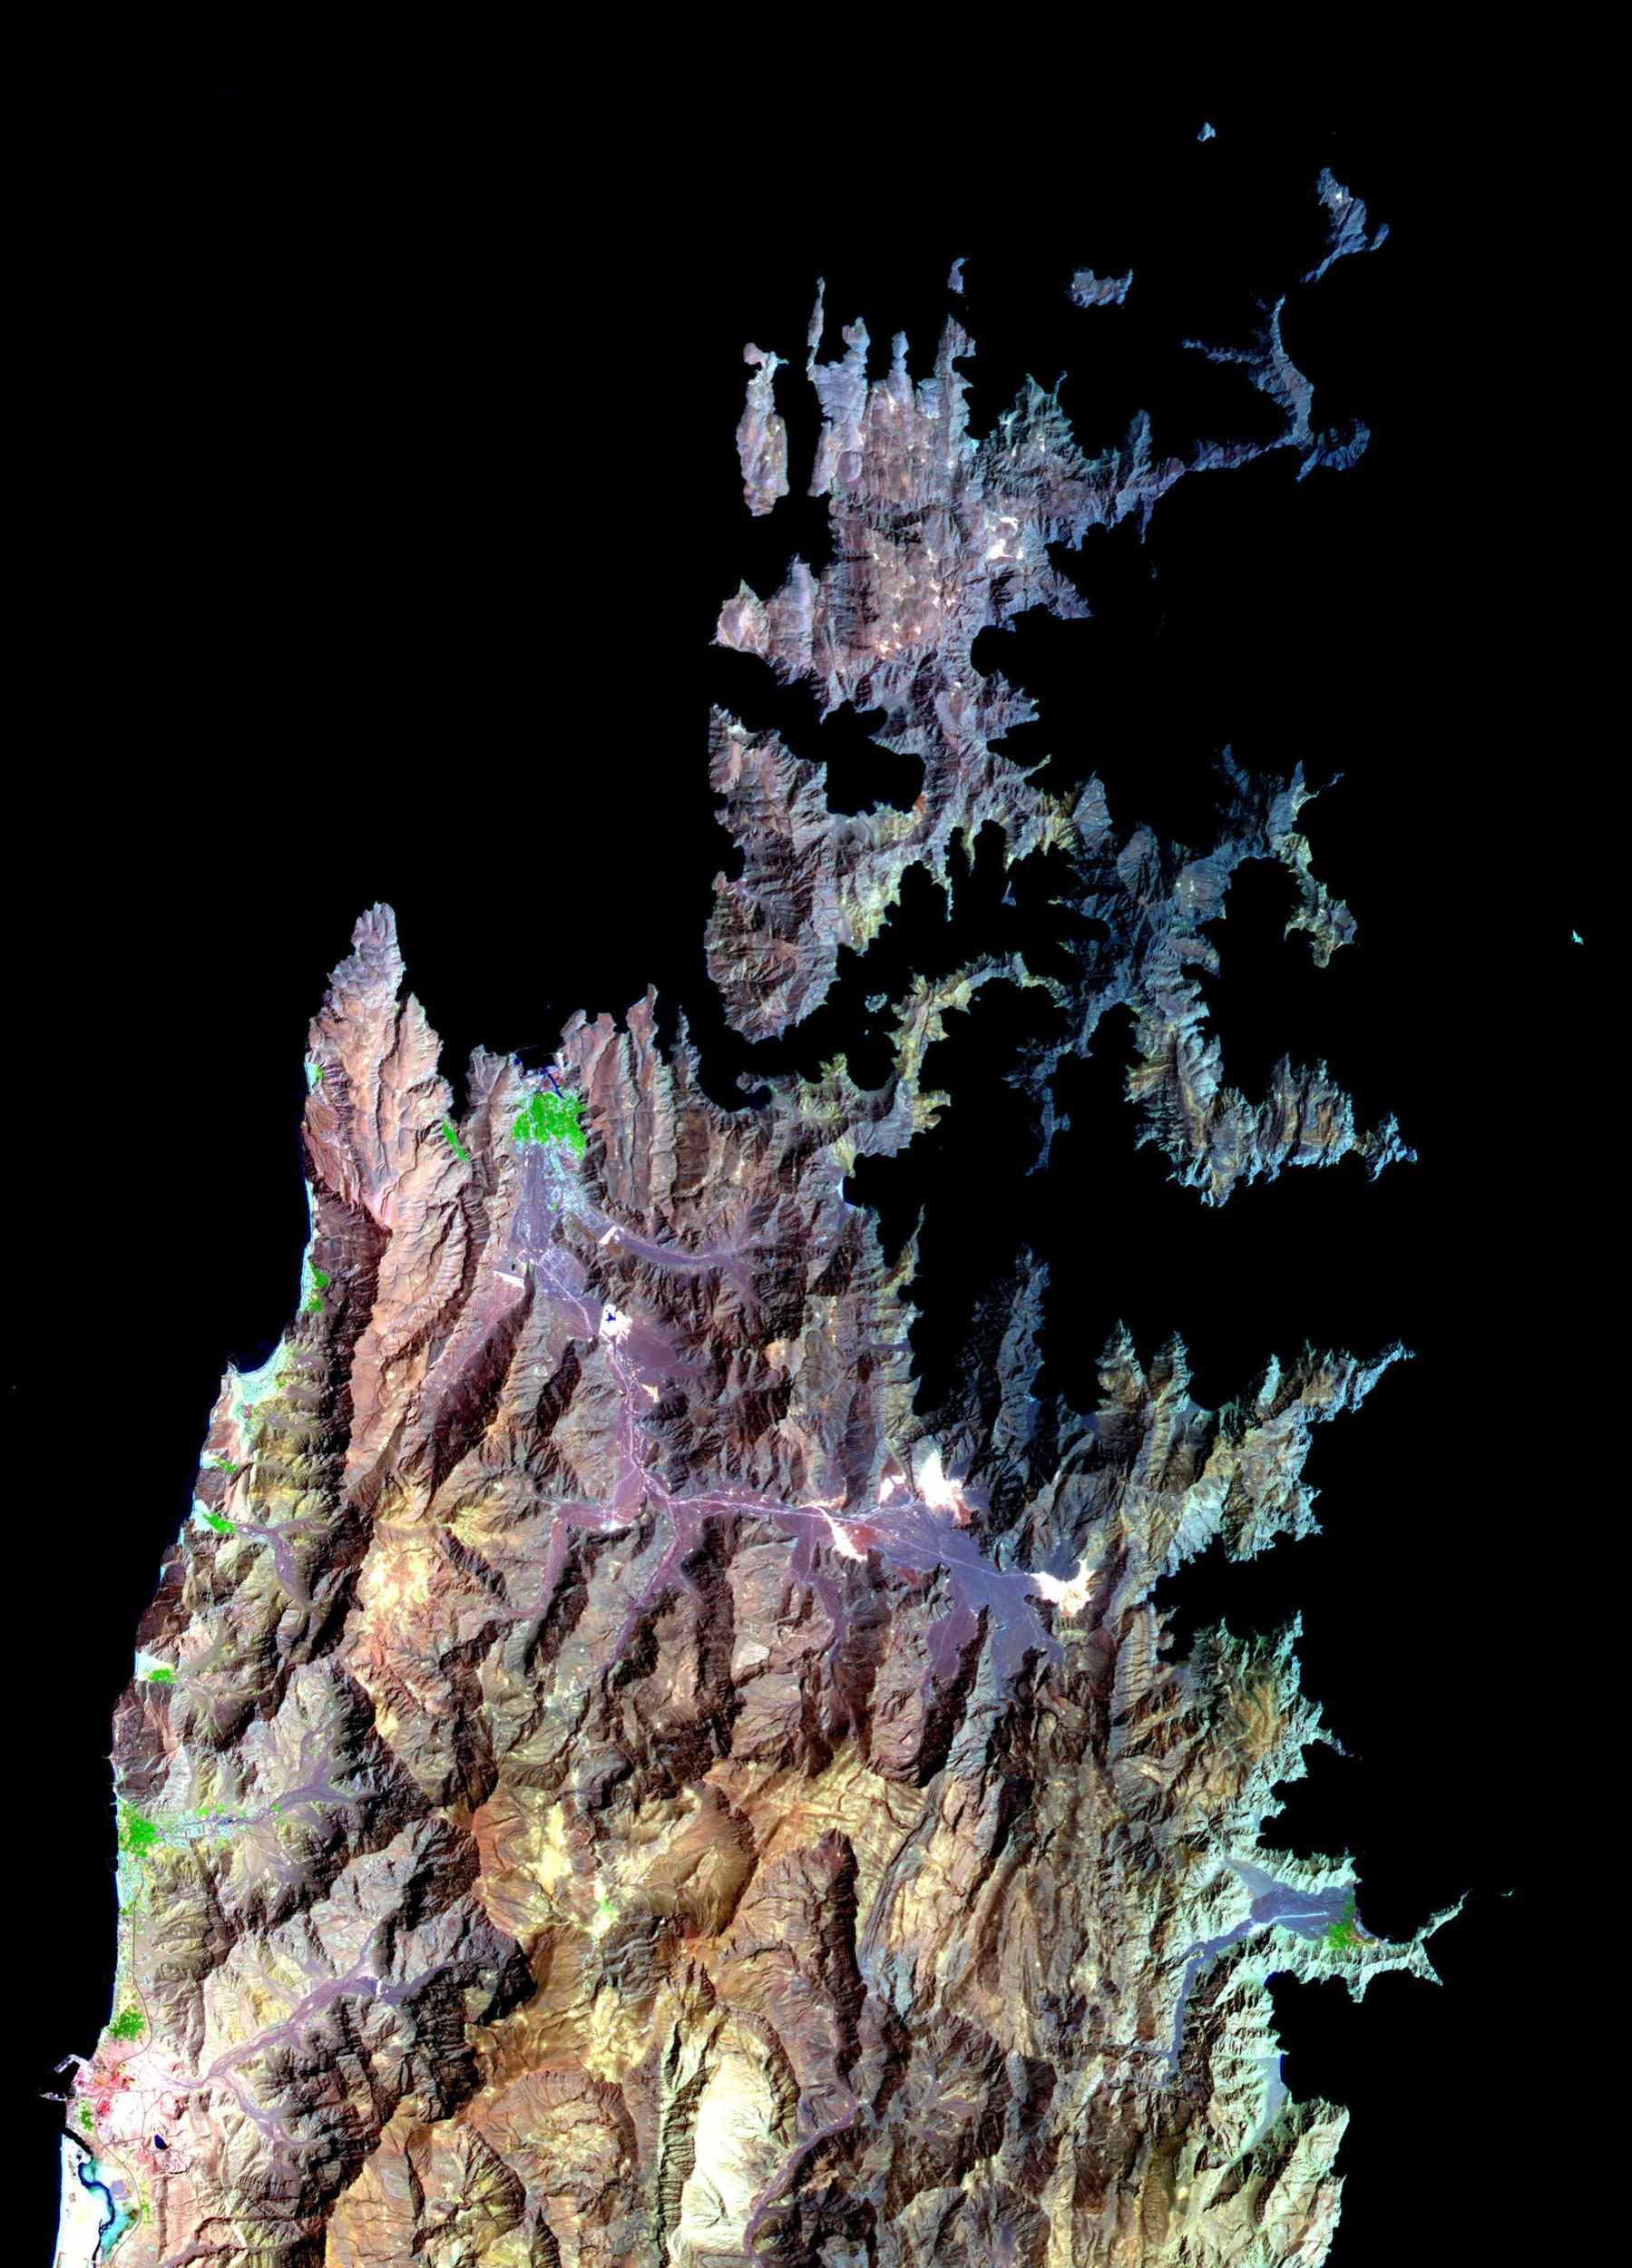 The Musandam Peninsula is part of Oman, separated from the rest of the country by the United Arab Emirates. This image was acquired by NASA's Terra satellite on March 27, 2004.